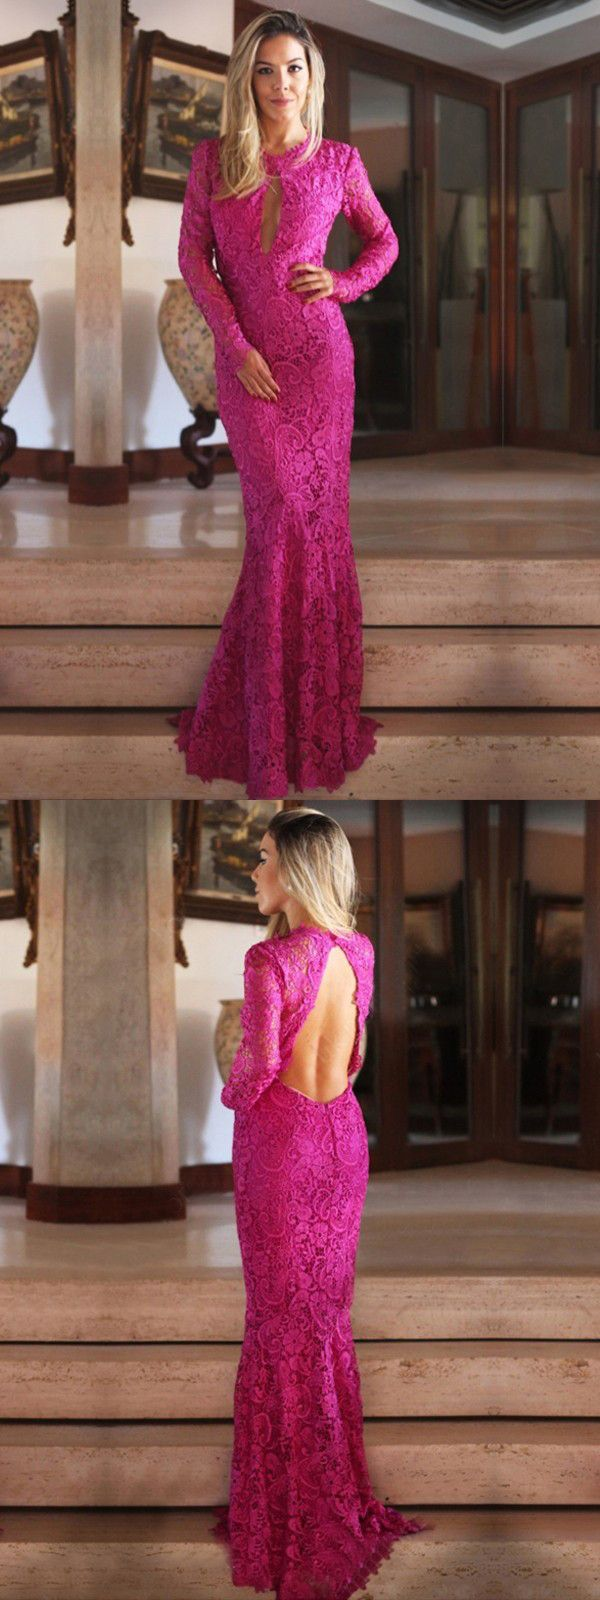 mermaid prom dress modest beautiful lace long prom dress vb